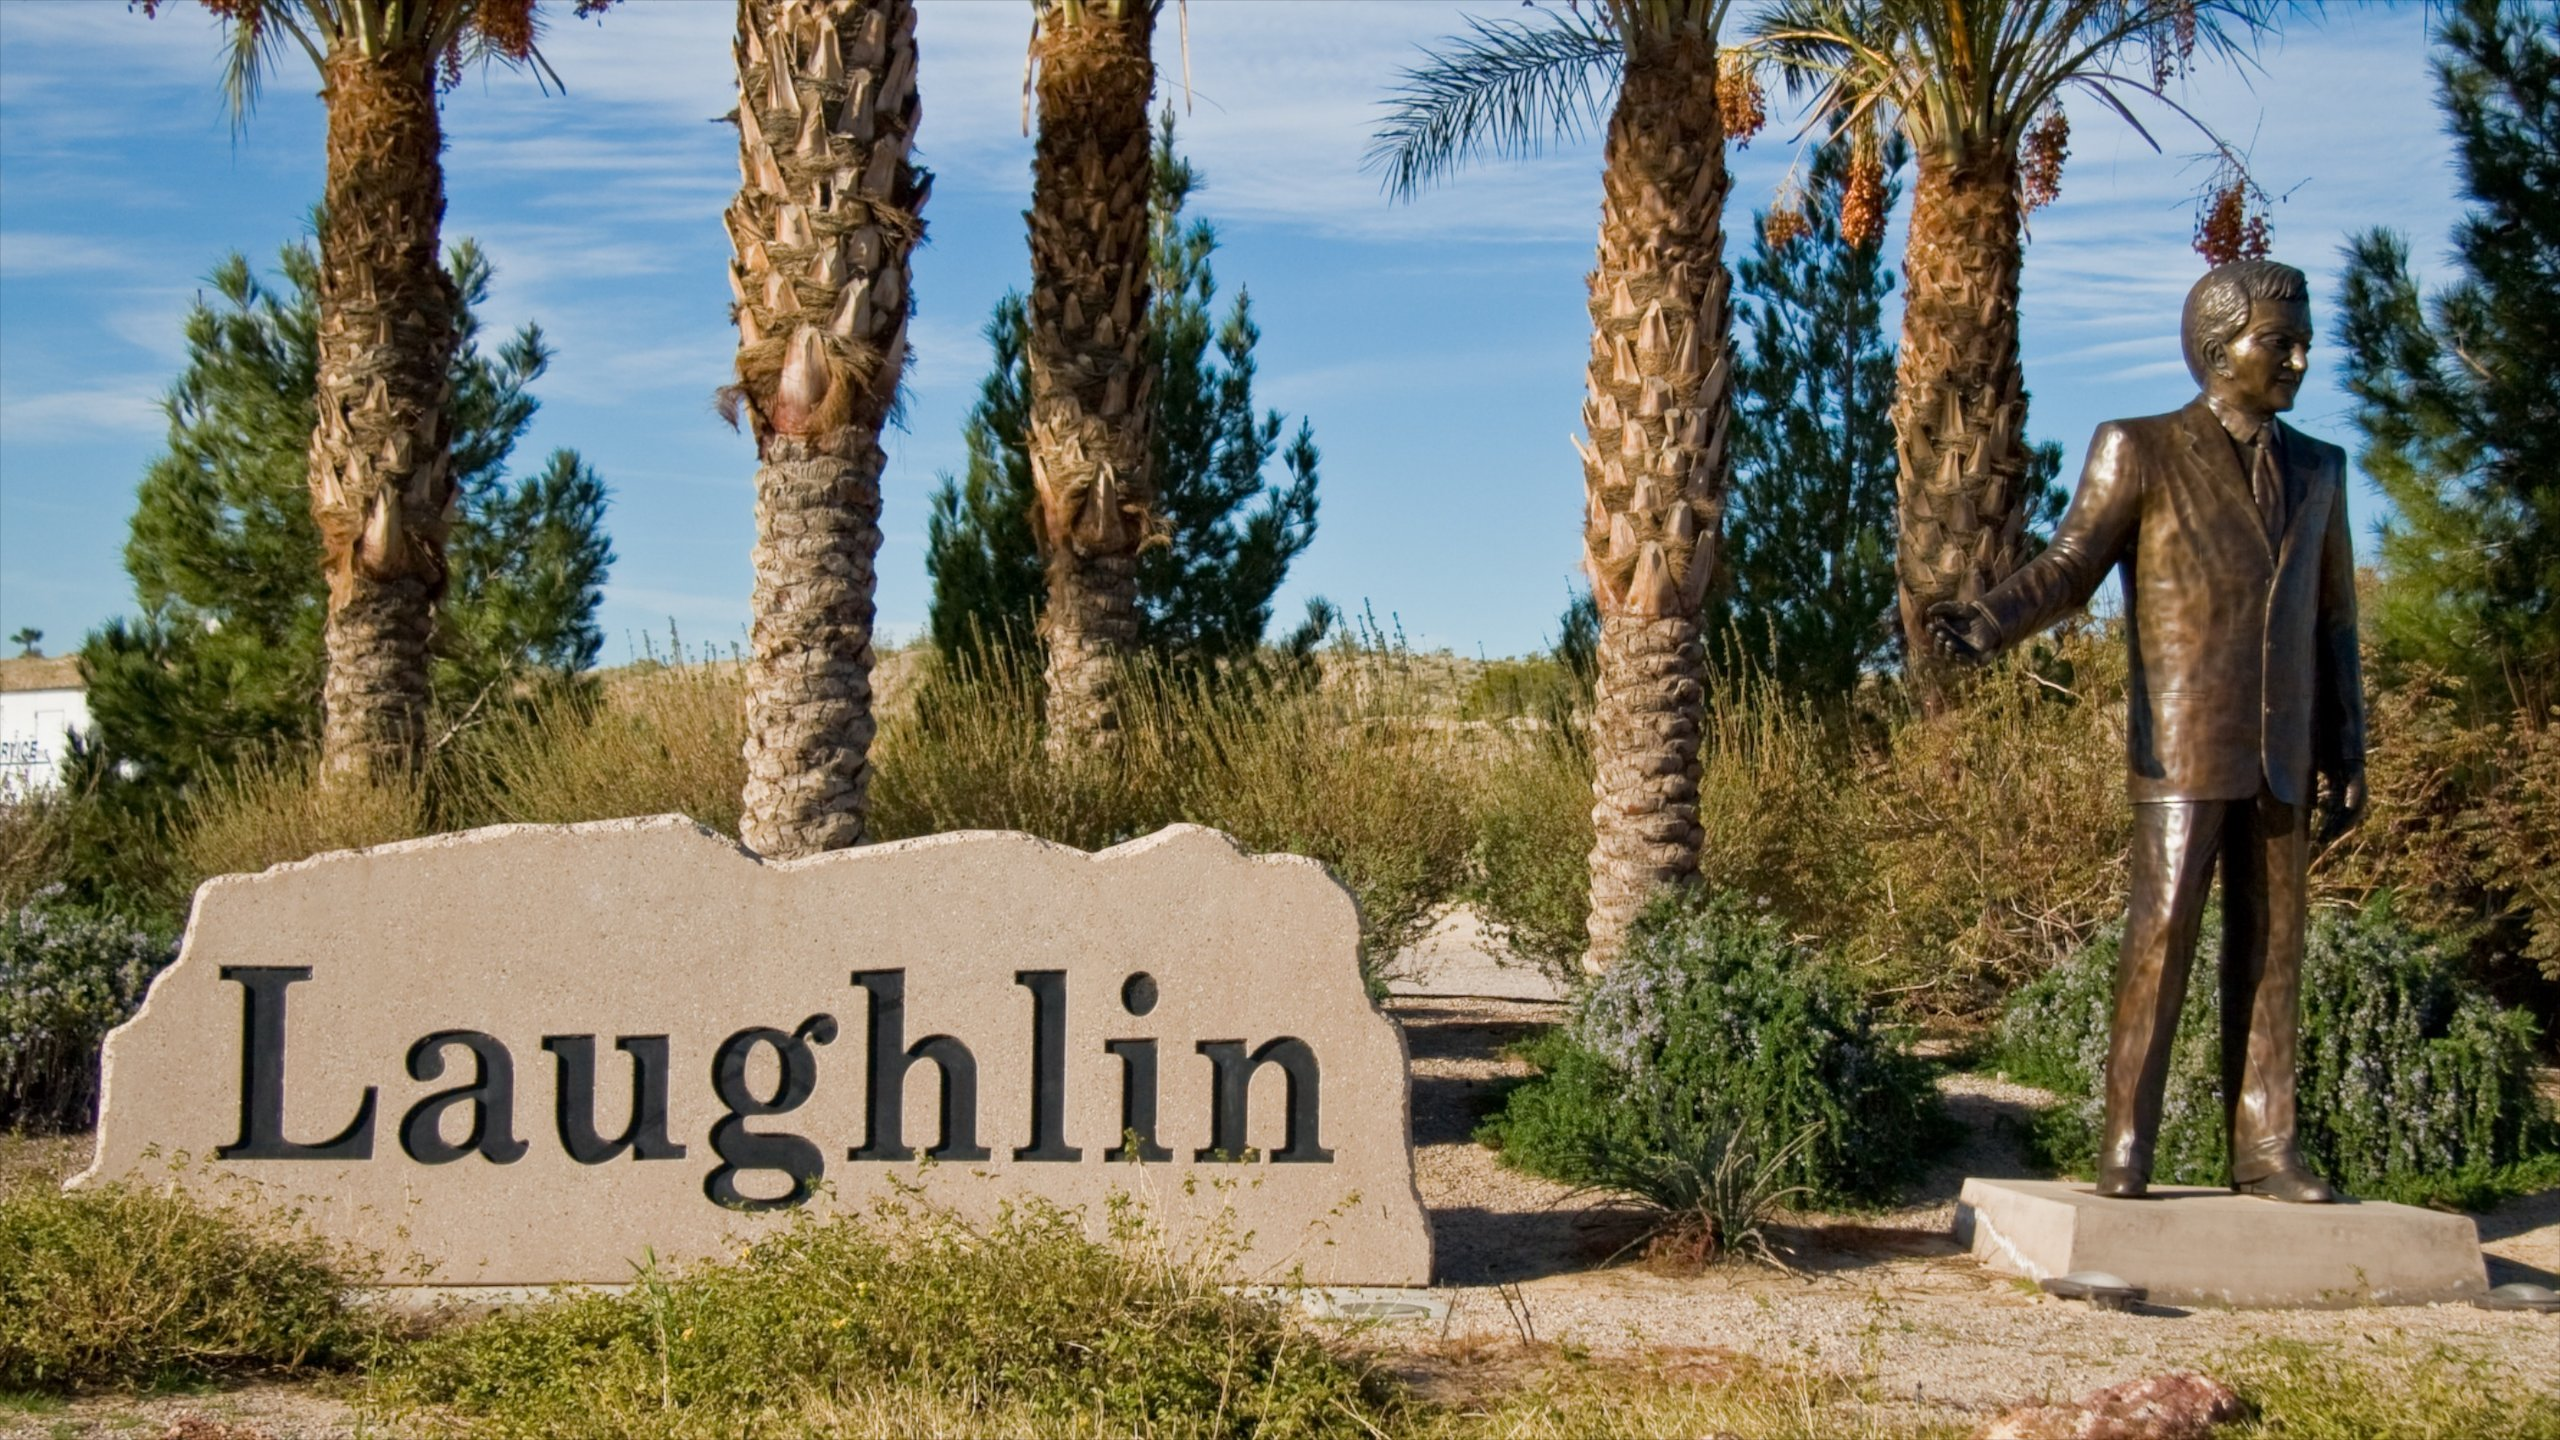 Traveling to Laughlin, Nevada 2009 for Spring Break or Summer